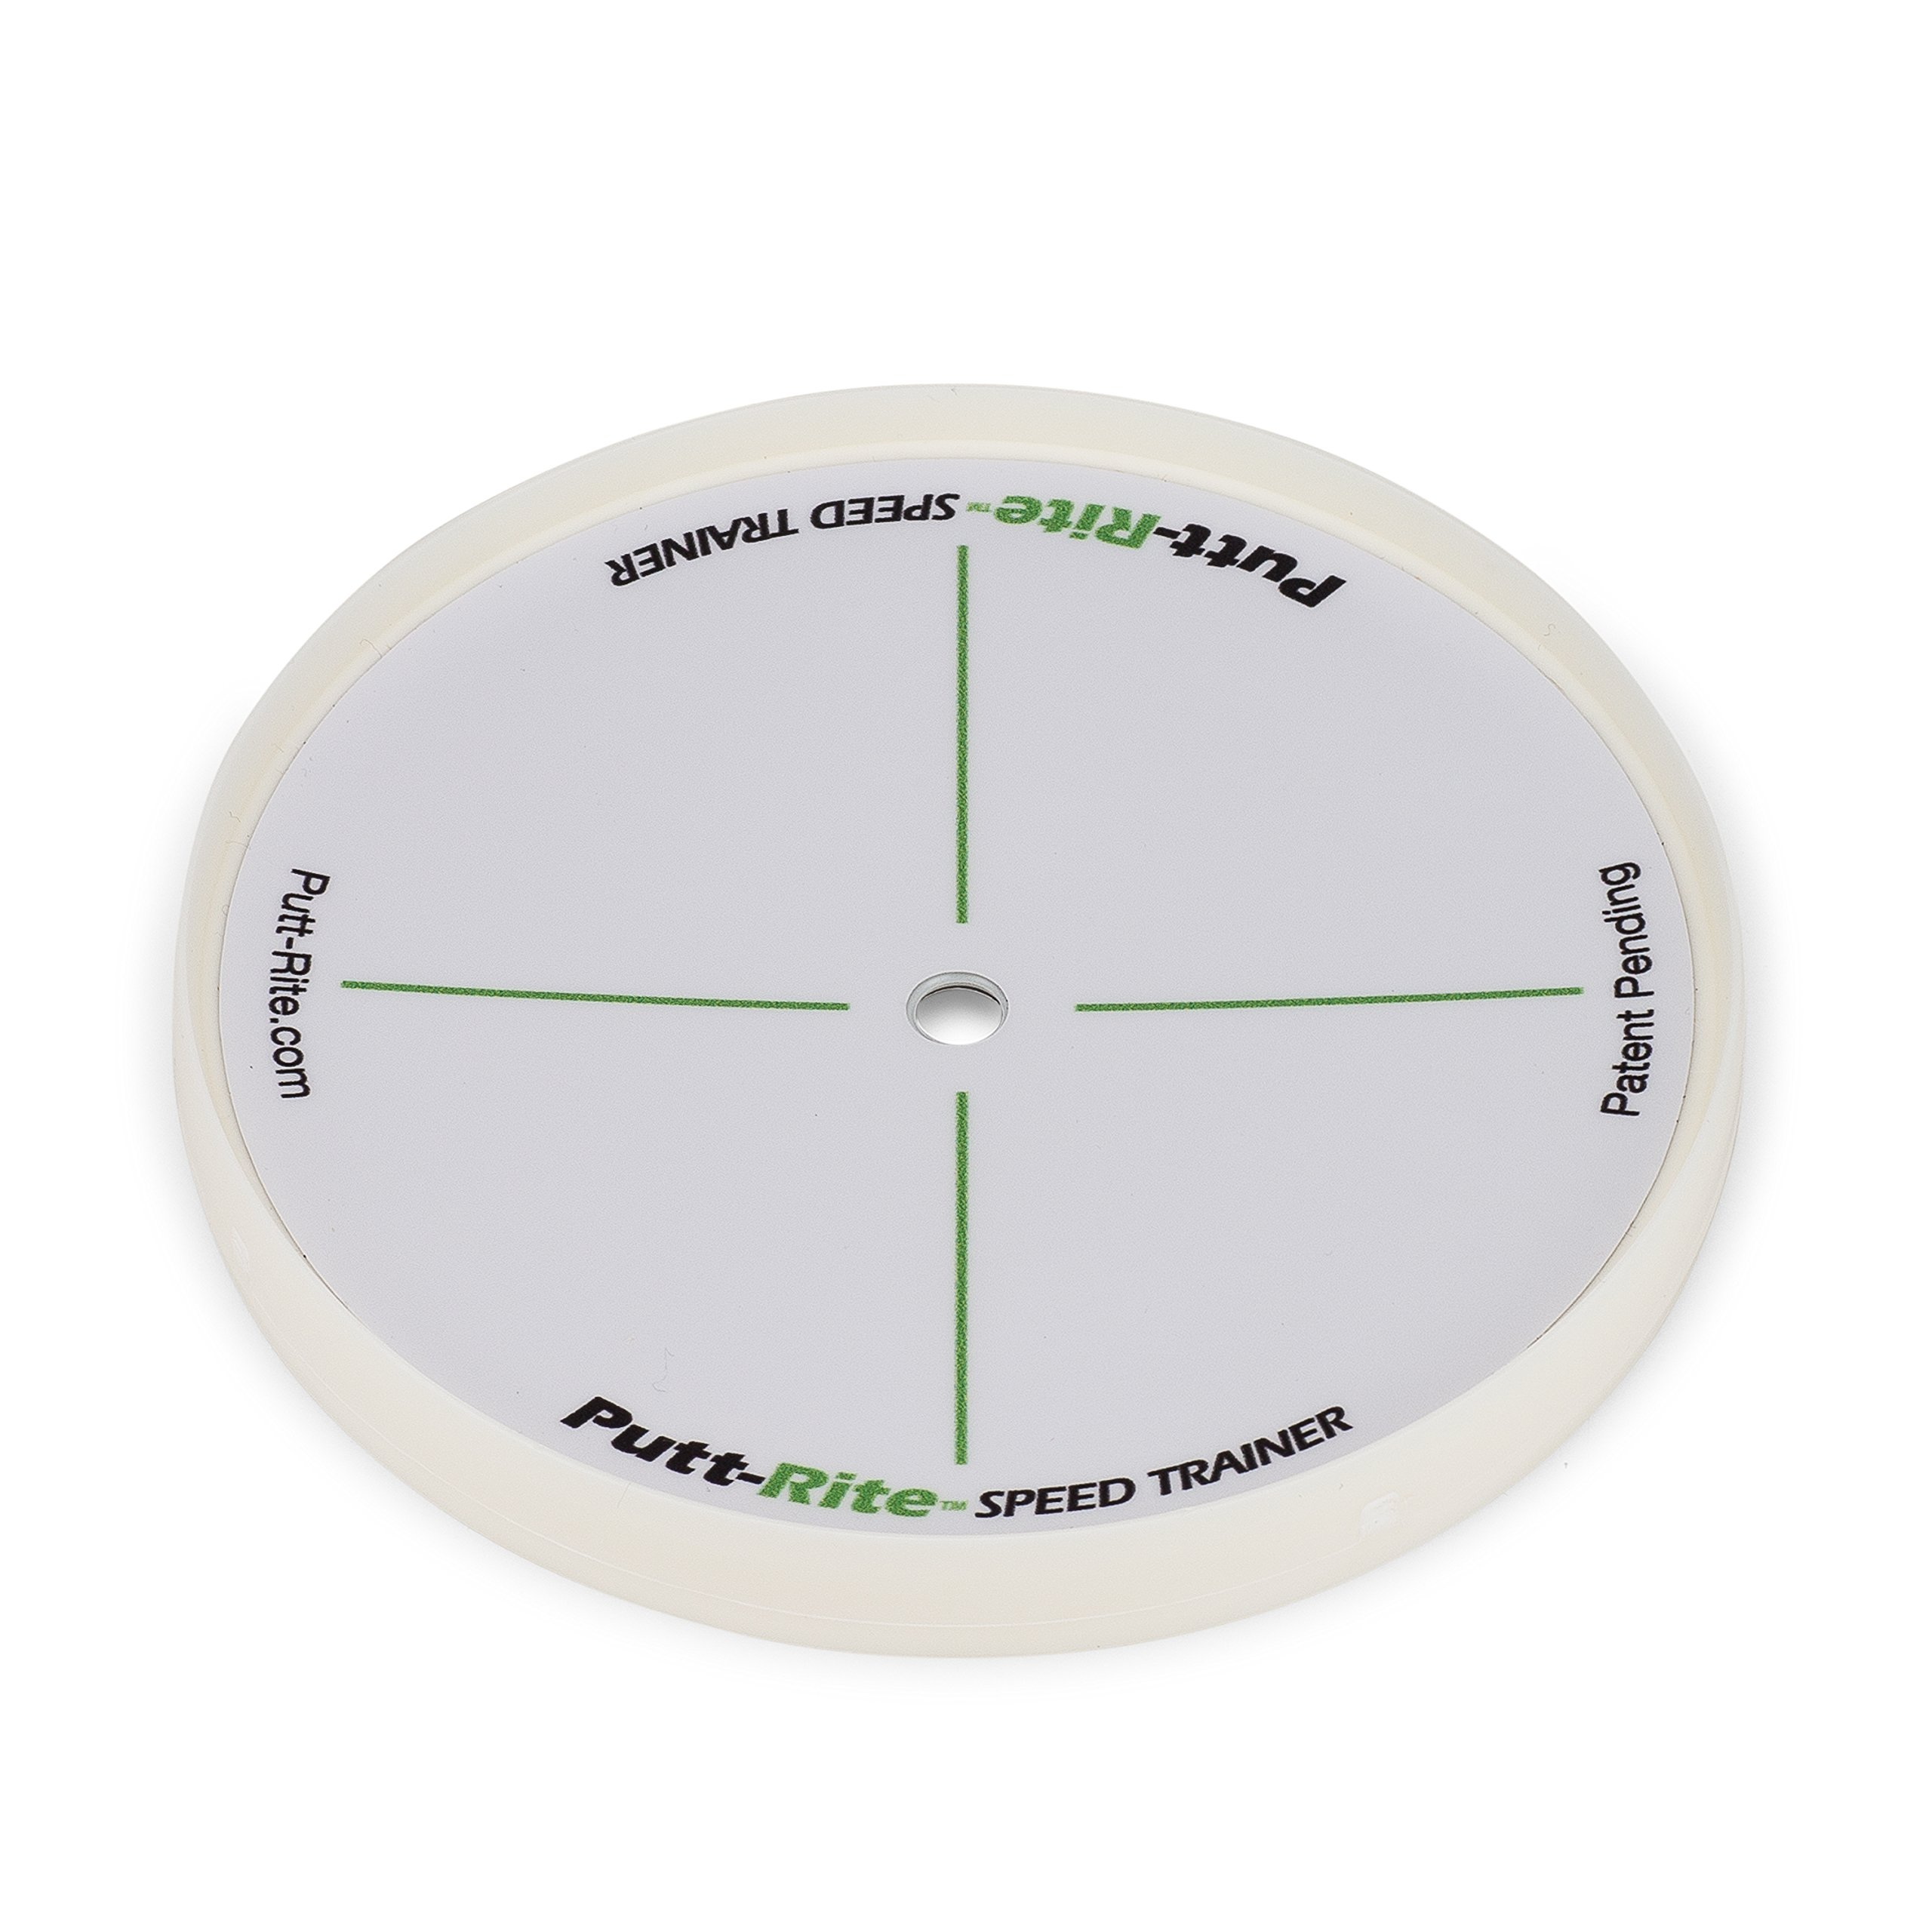 Putt-Rite Speed Trainer - Putting Training Aid to Perfect Putting Speed by Putt-Rite (Image #4)